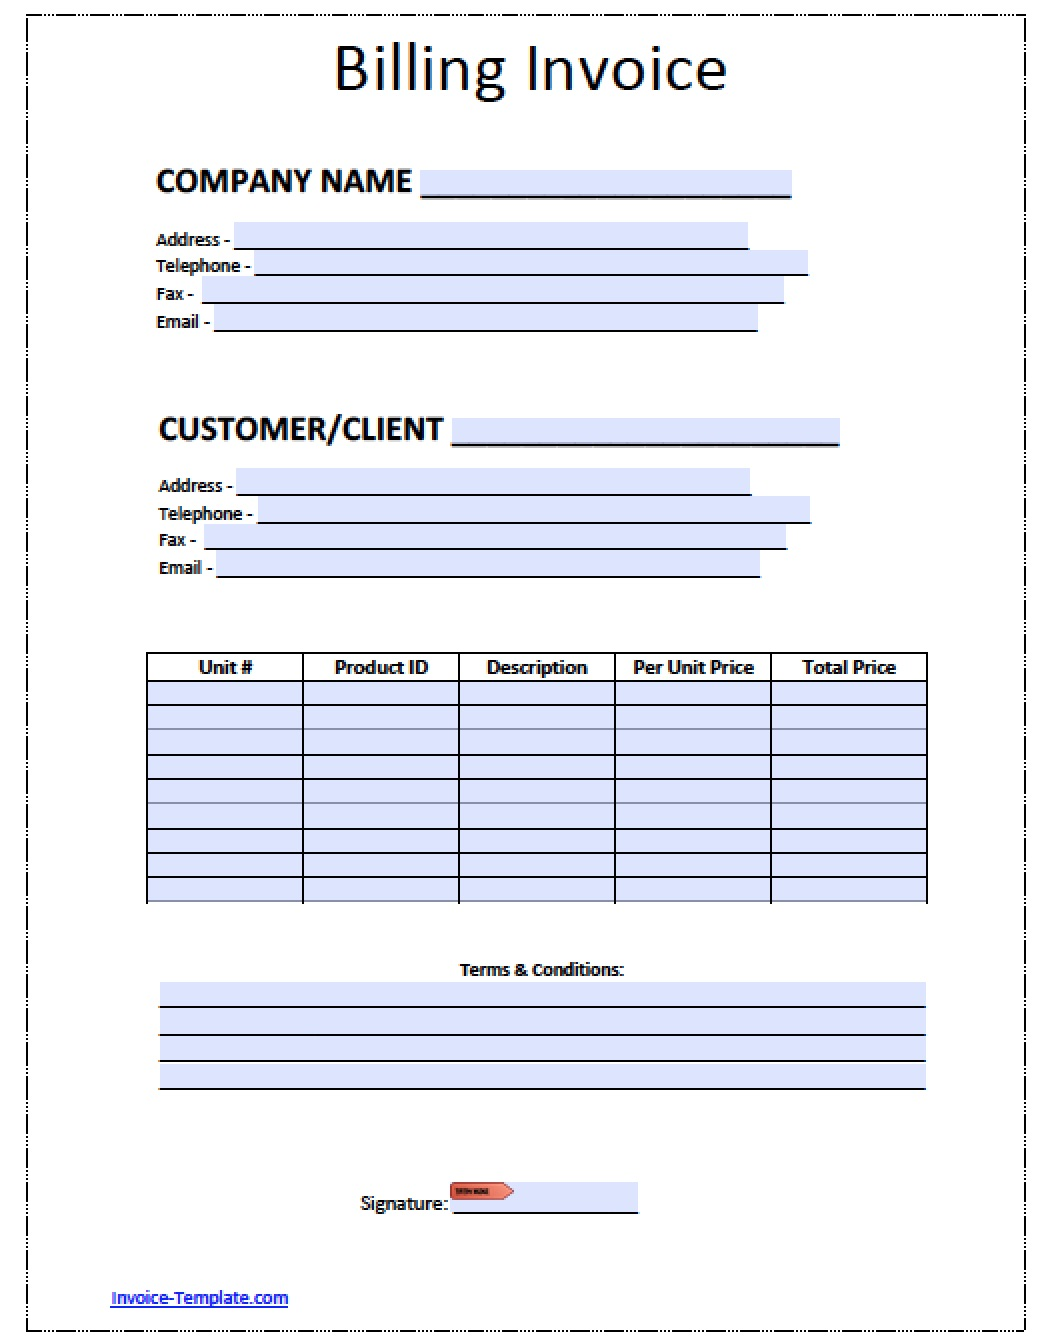 Billing Invoice Template Word Pdf  Invoice Template Word Document